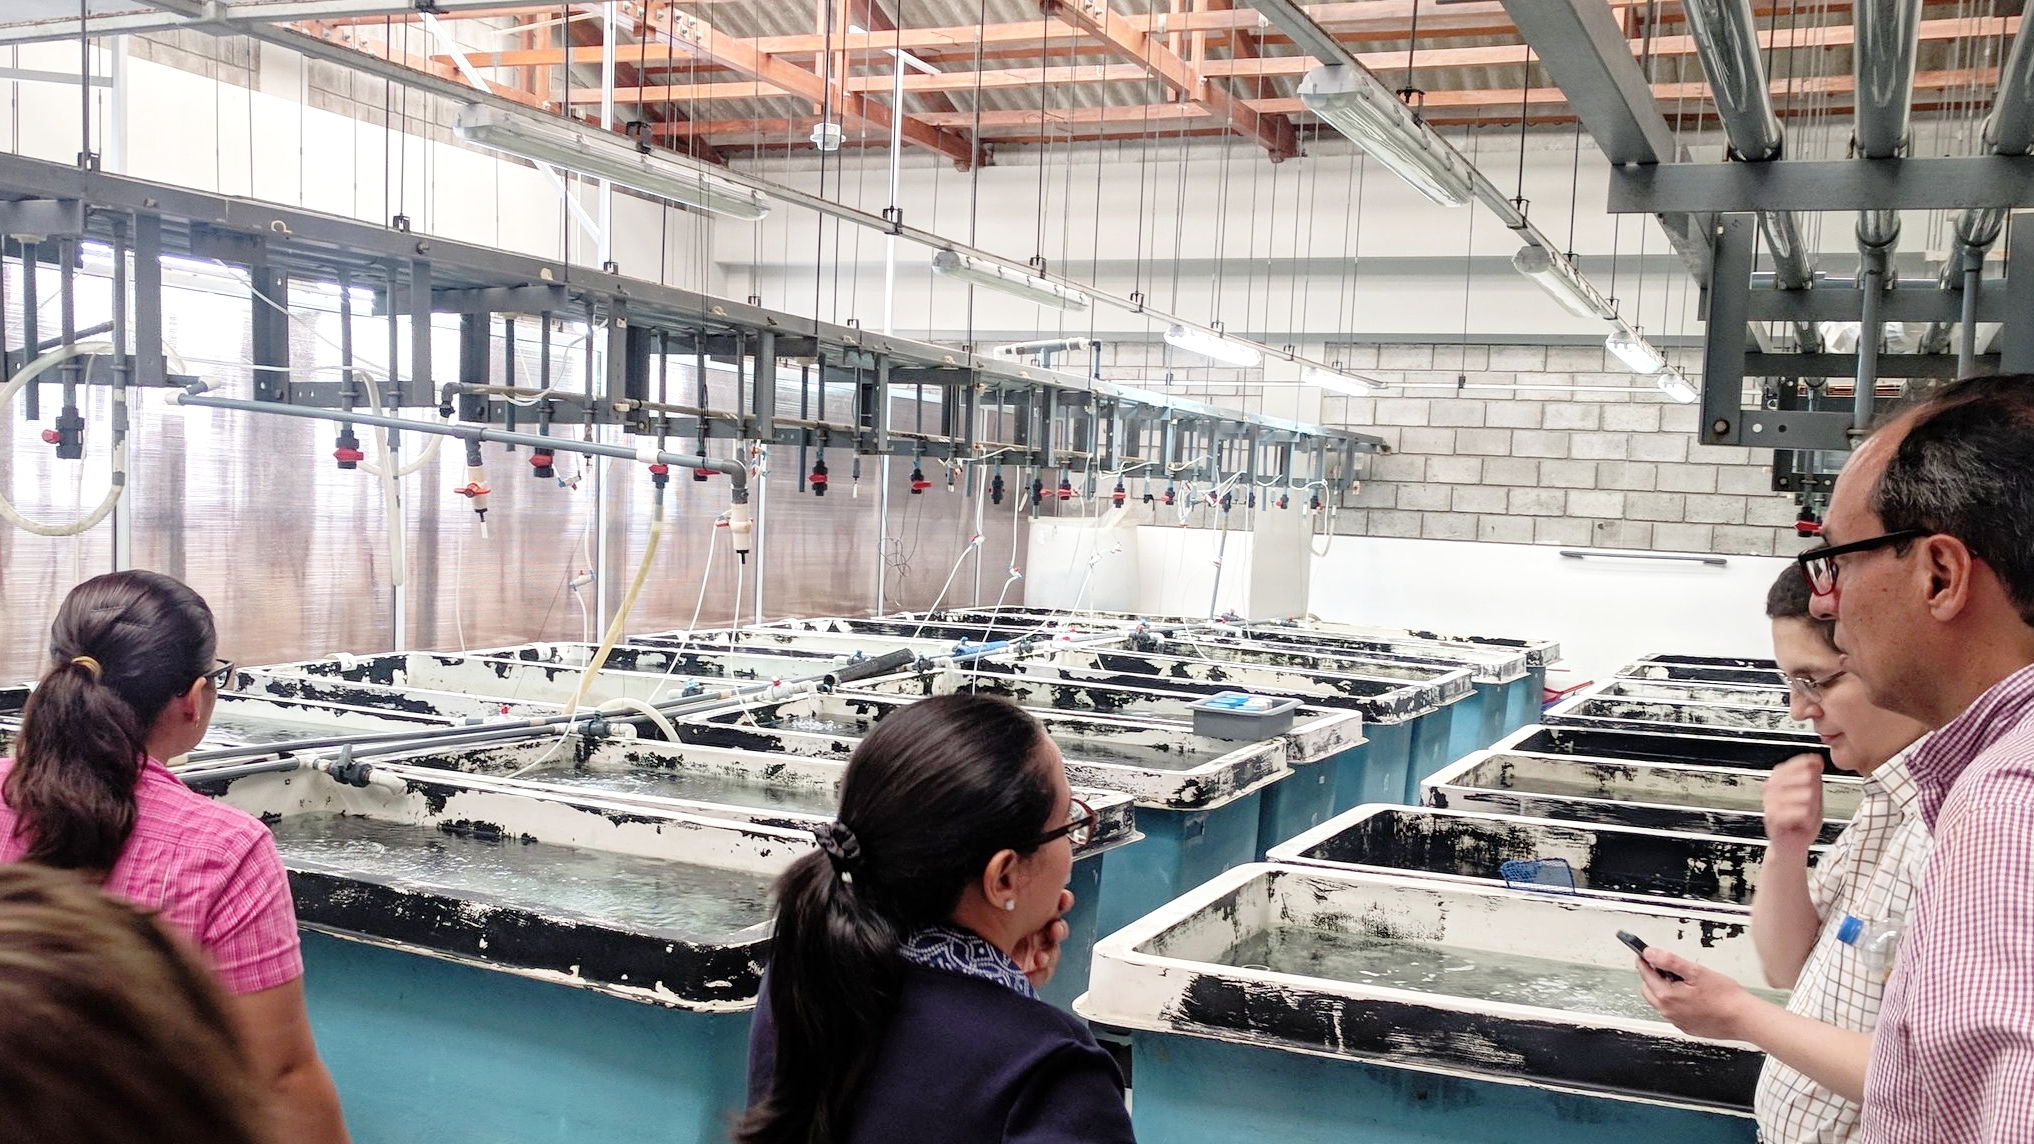 Aquaculture - Bio products and certified services that can be used to defend the aquaculture industry from pathogens, as well as detecting new diseases and industry support for diversification and new product evaluation opportunities.